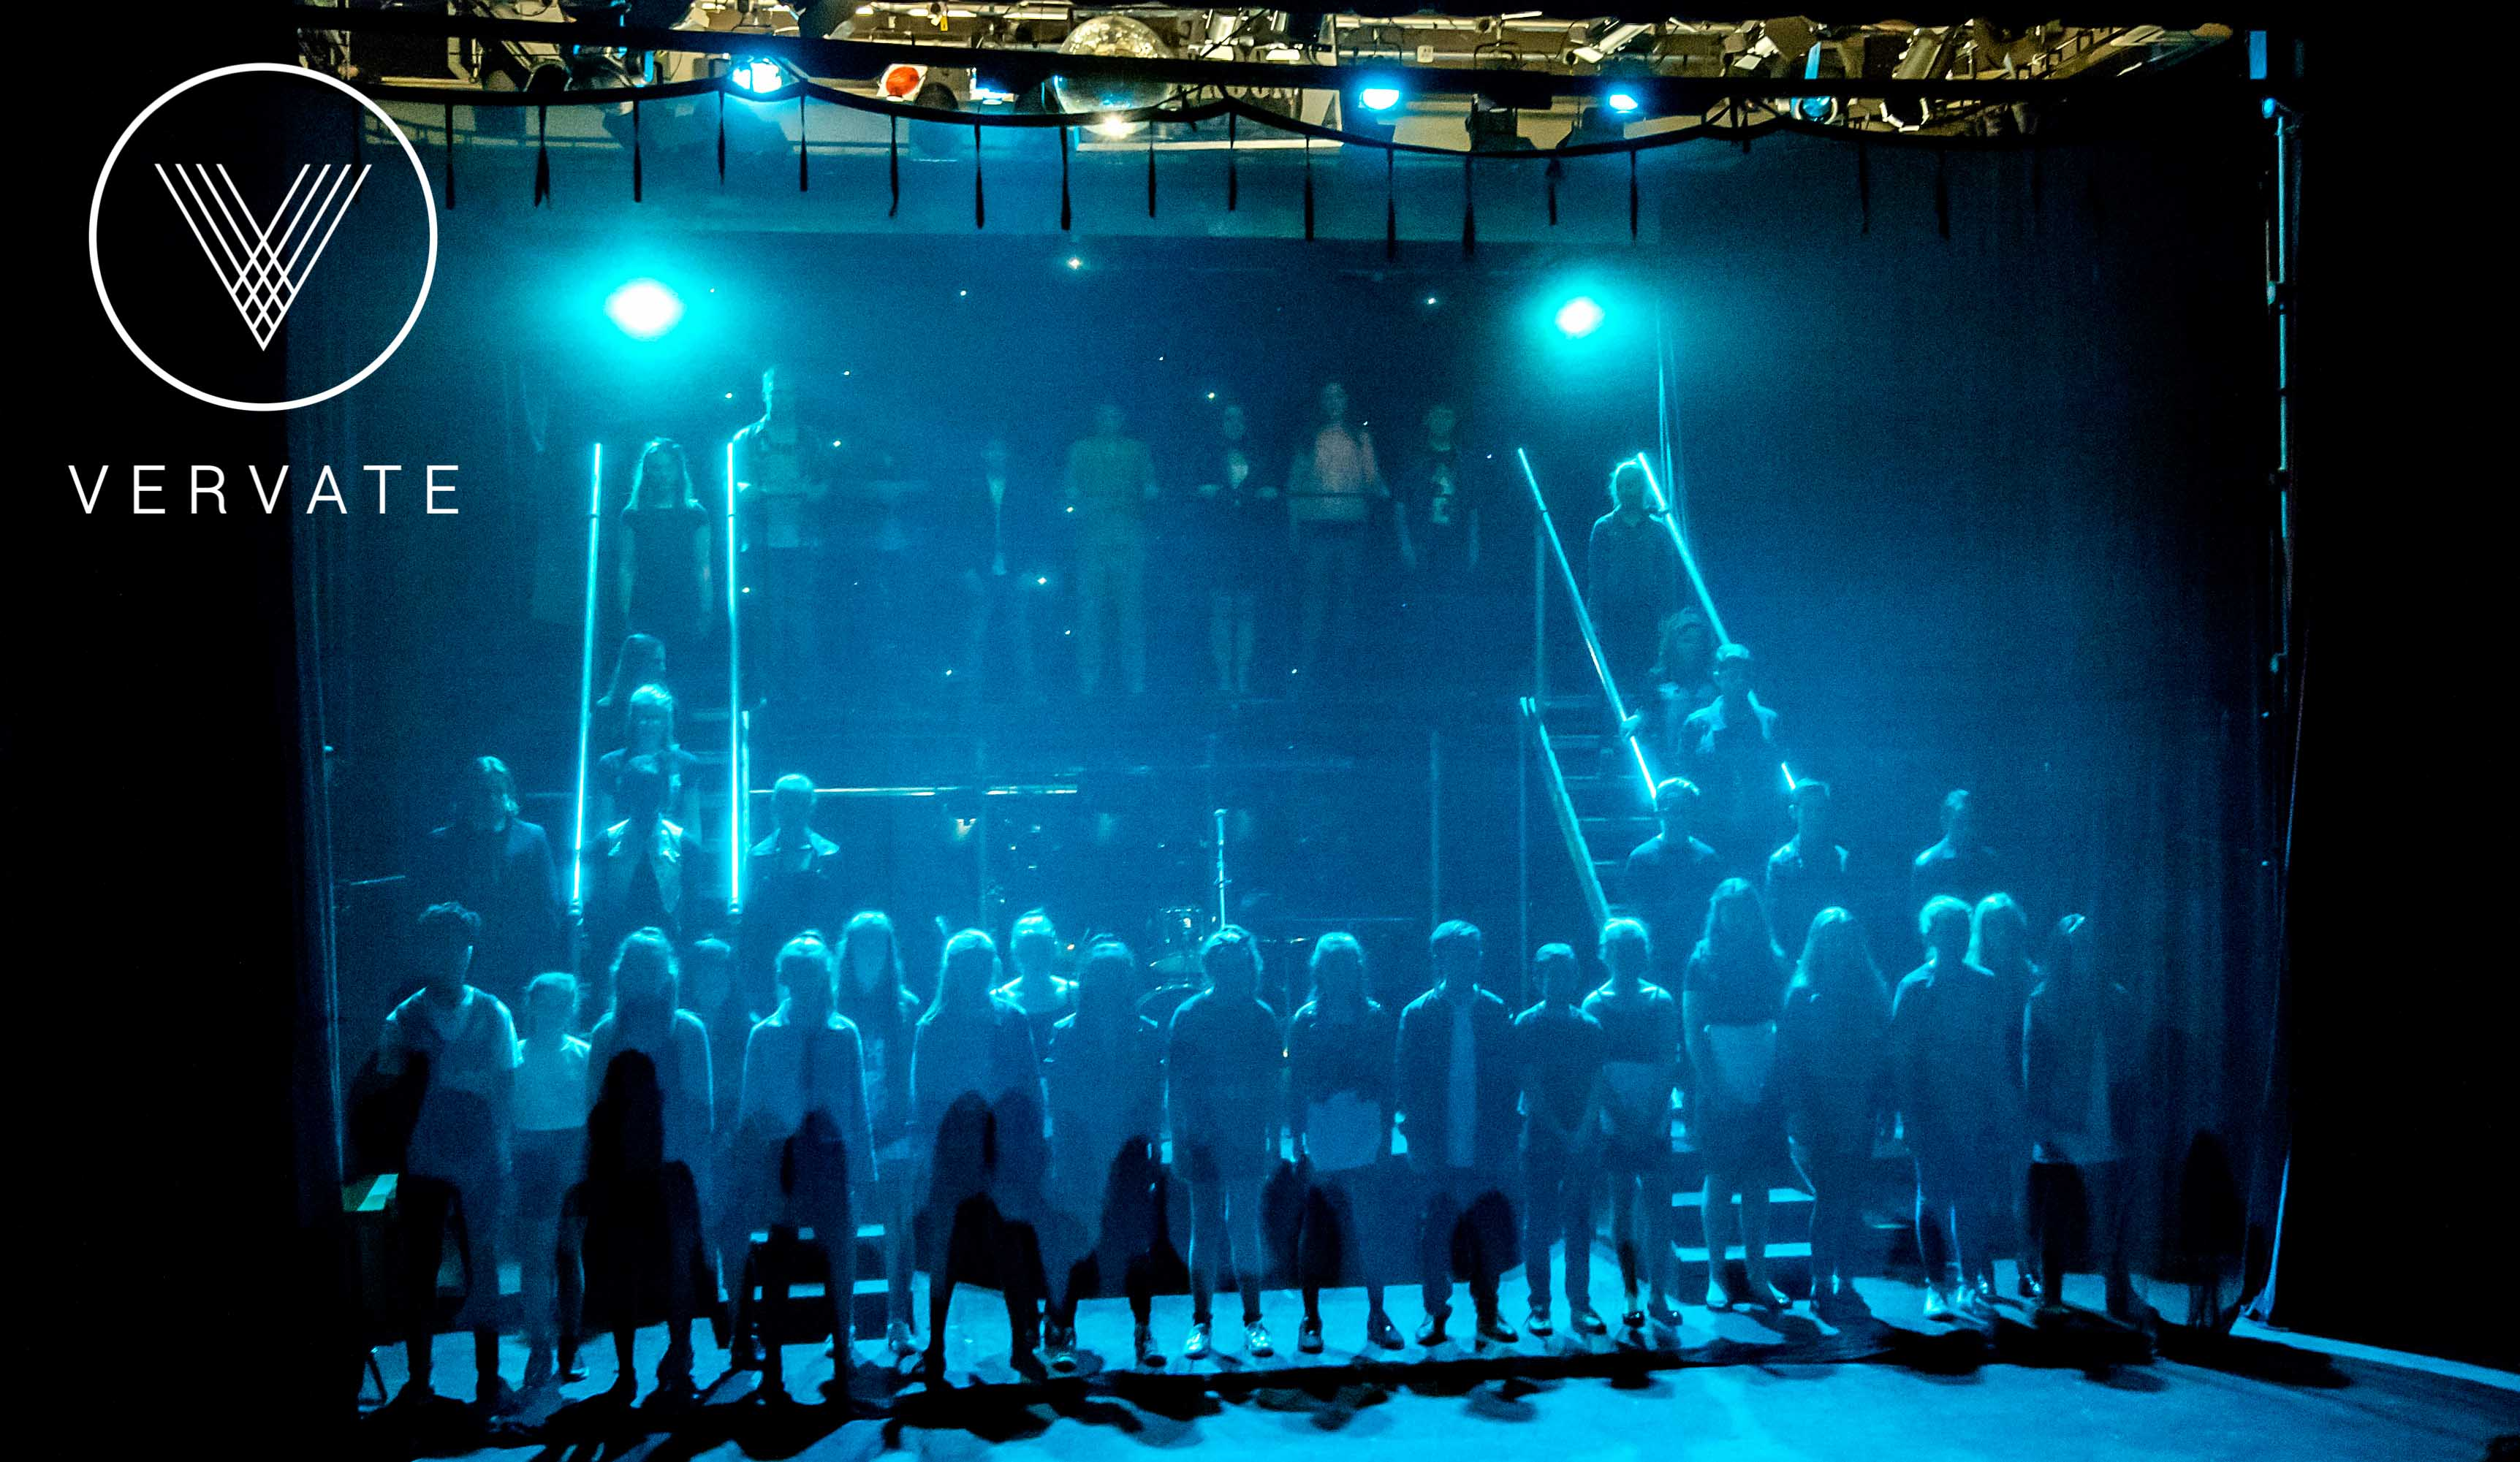 blue light on pupil performers at a school production